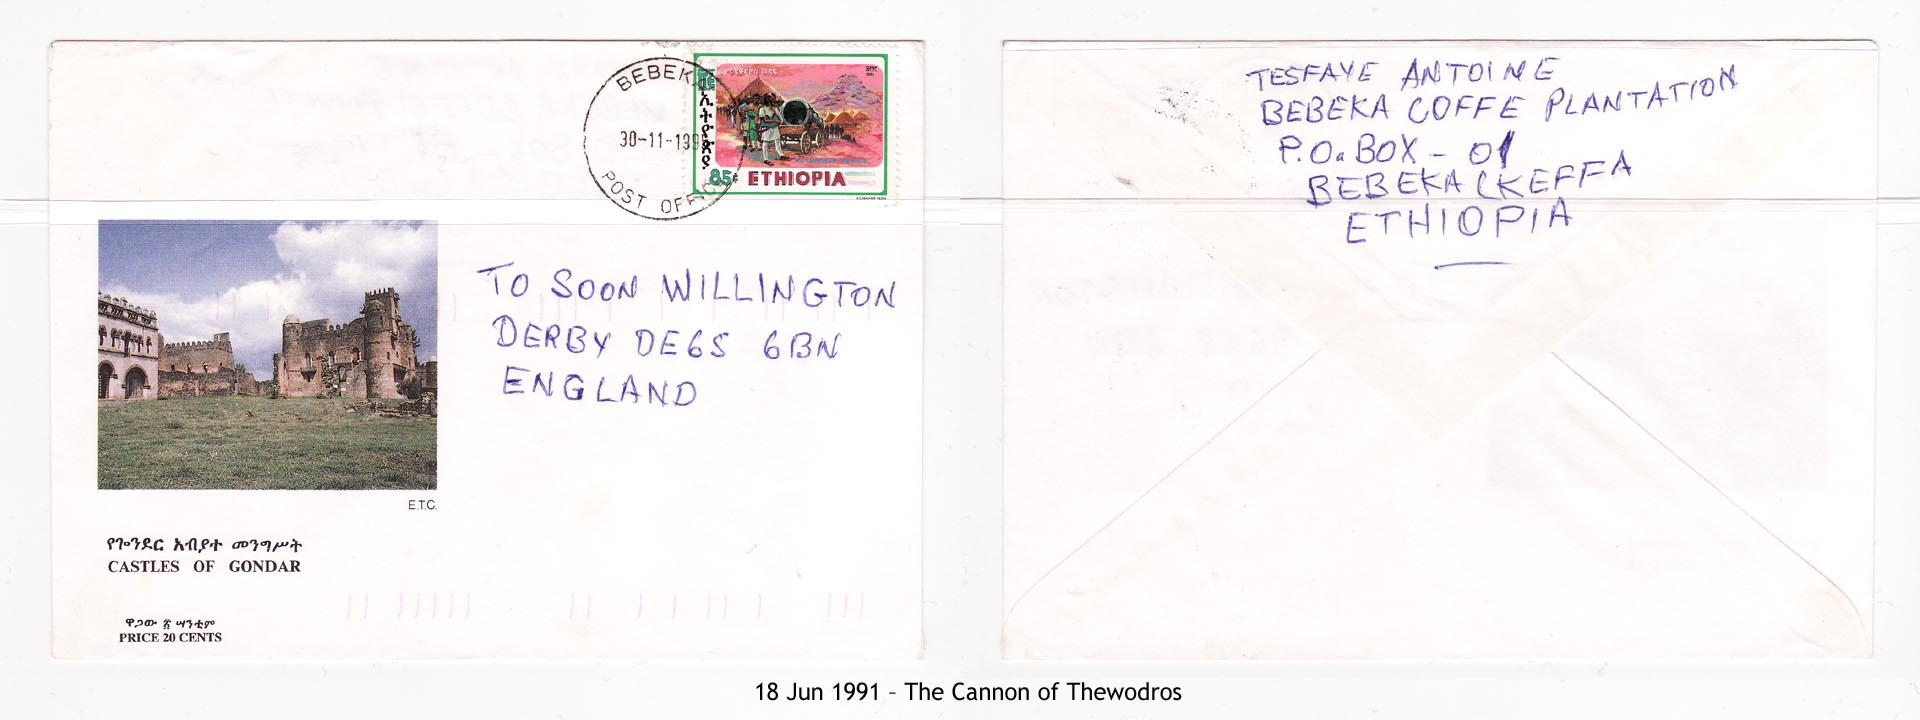 19910618 – The Cannon of Thewodros